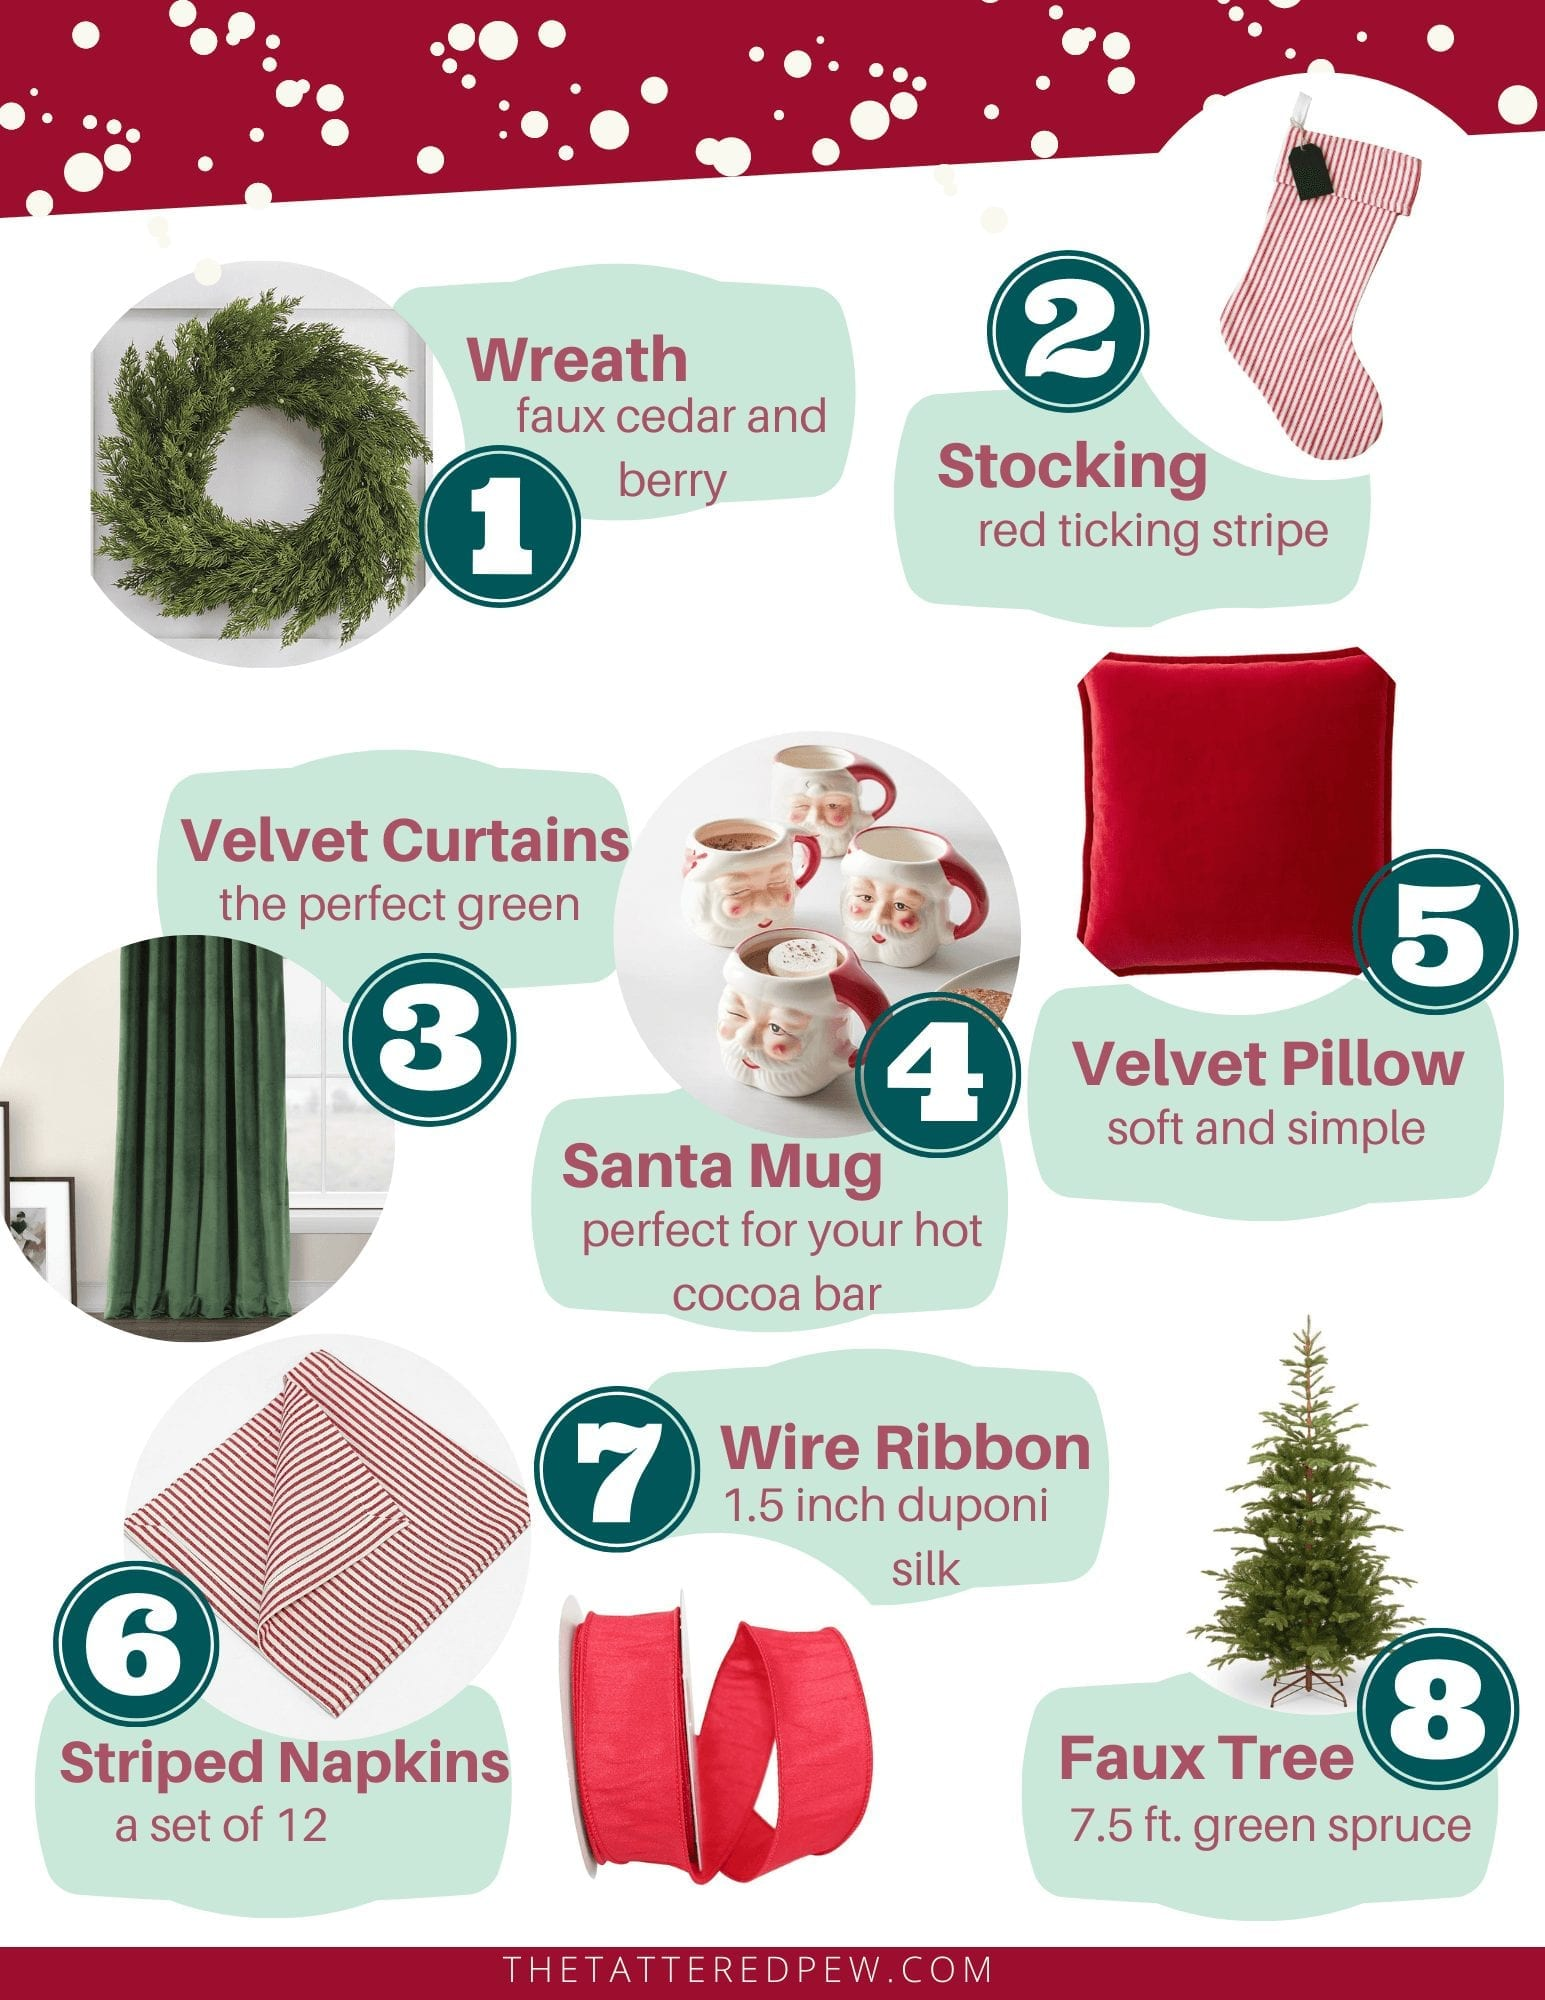 A peek at my Christmas decorating plans for this year...shop with me!